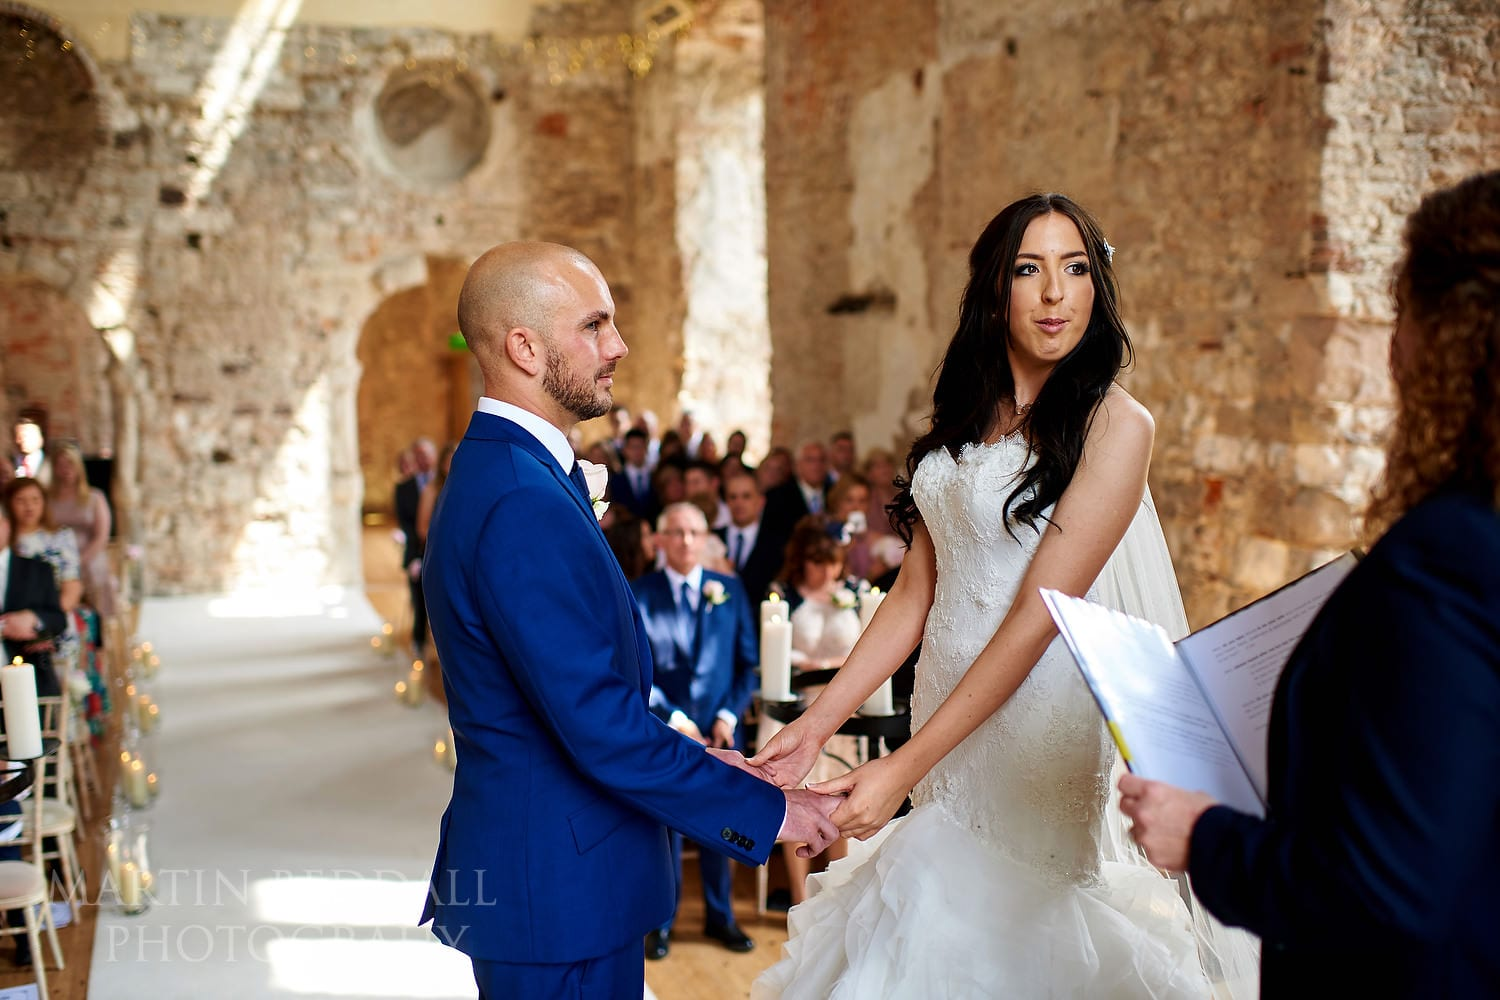 Holding hands during a Lulworth Castle wedding ceremony